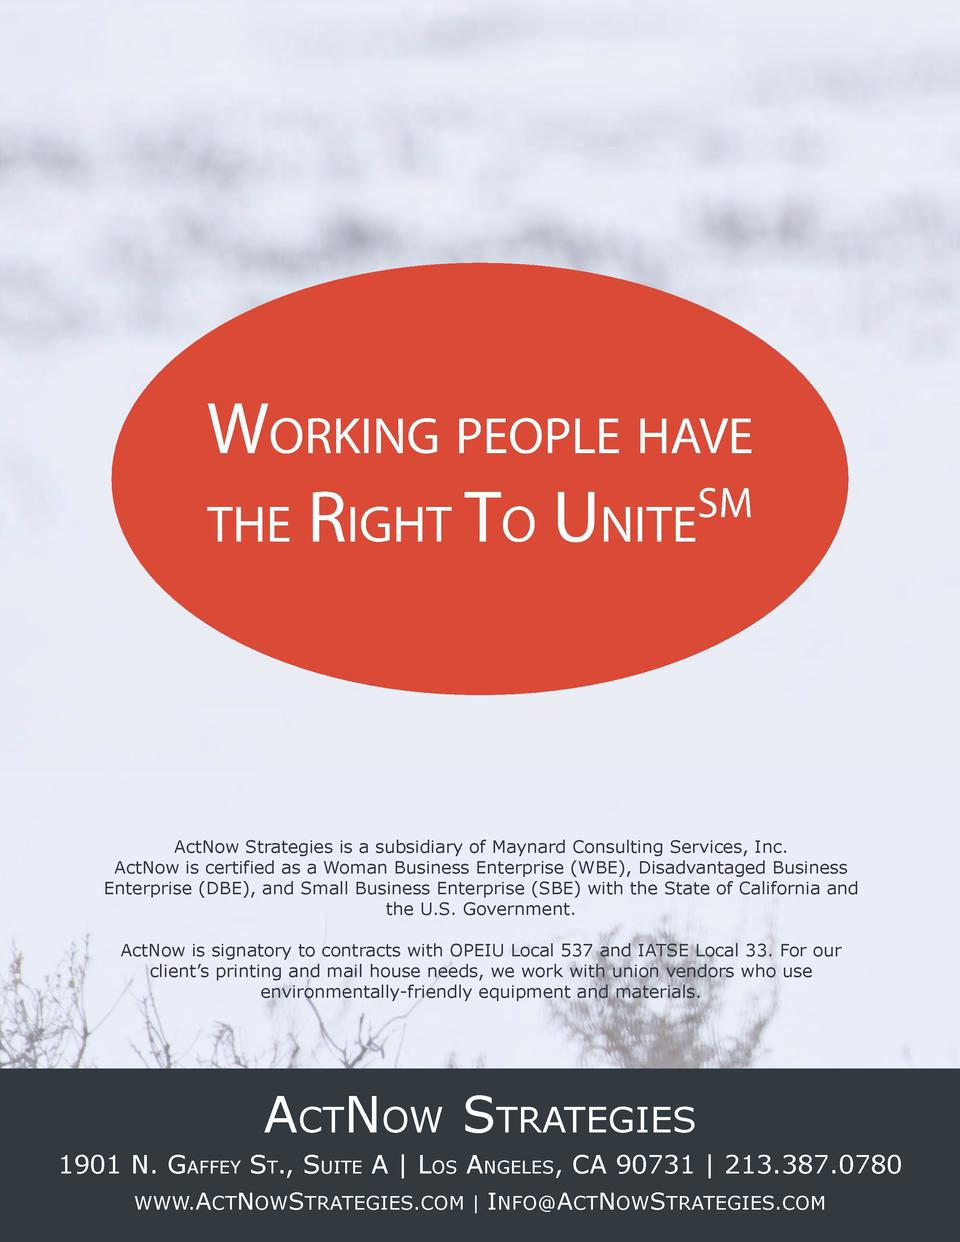 WORKING PEOPLE HAVE SM THE RIGHT TO UNITE  ActNow Strategies is a subsidiary of Maynard Consulting Services, Inc. ActNow i...